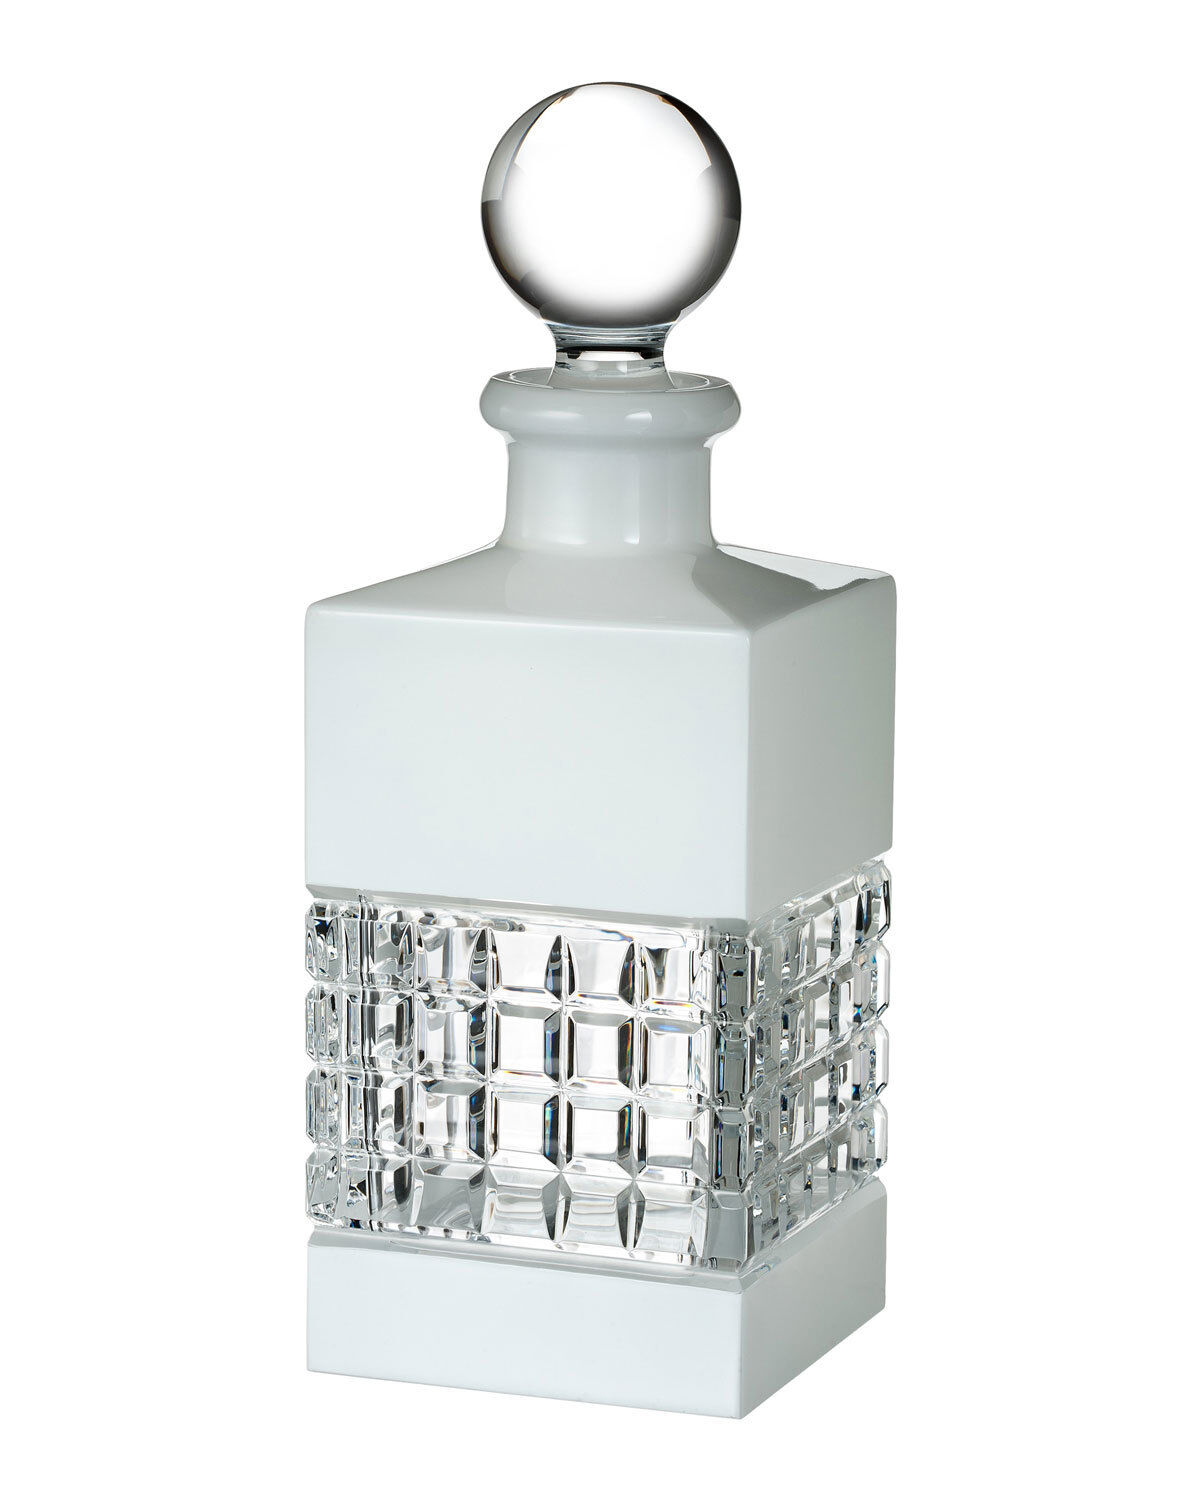 Waterford London Square blanc decanter cristal de plomb 25 Oz (environ 708.73 g)  40018769 nouveau